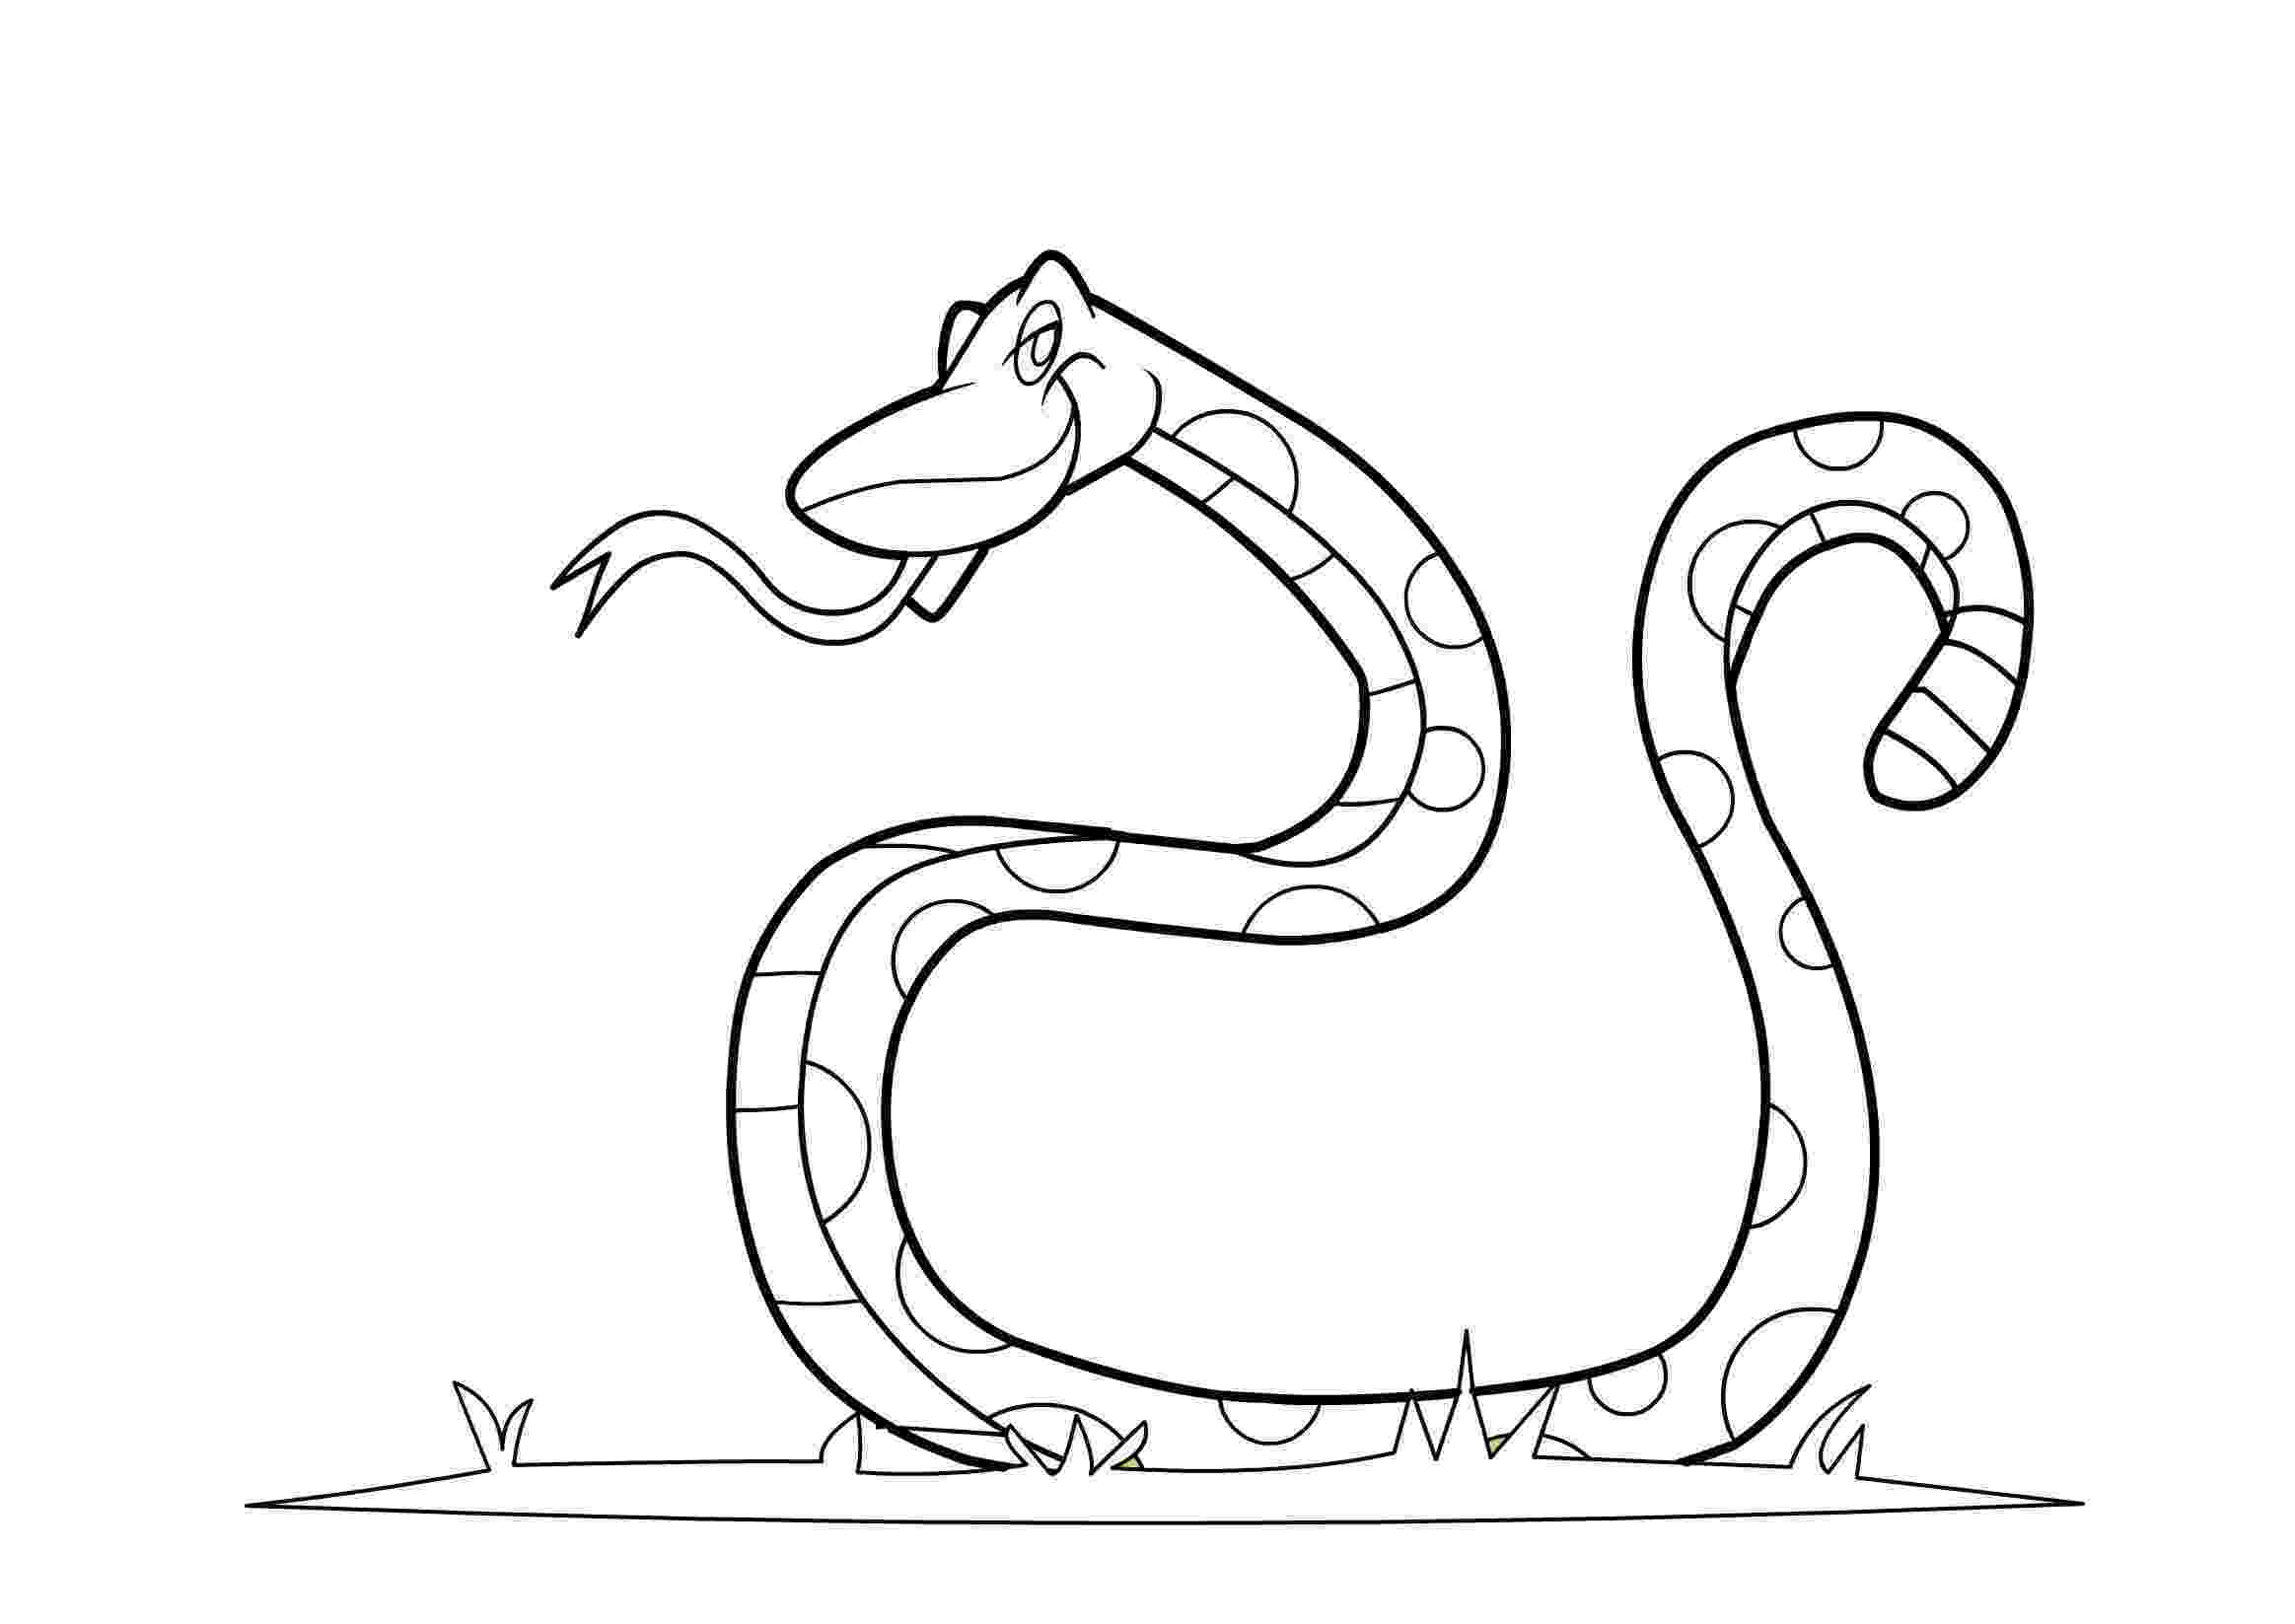 snake coloring page toddler theme snakes library storytime snake page coloring